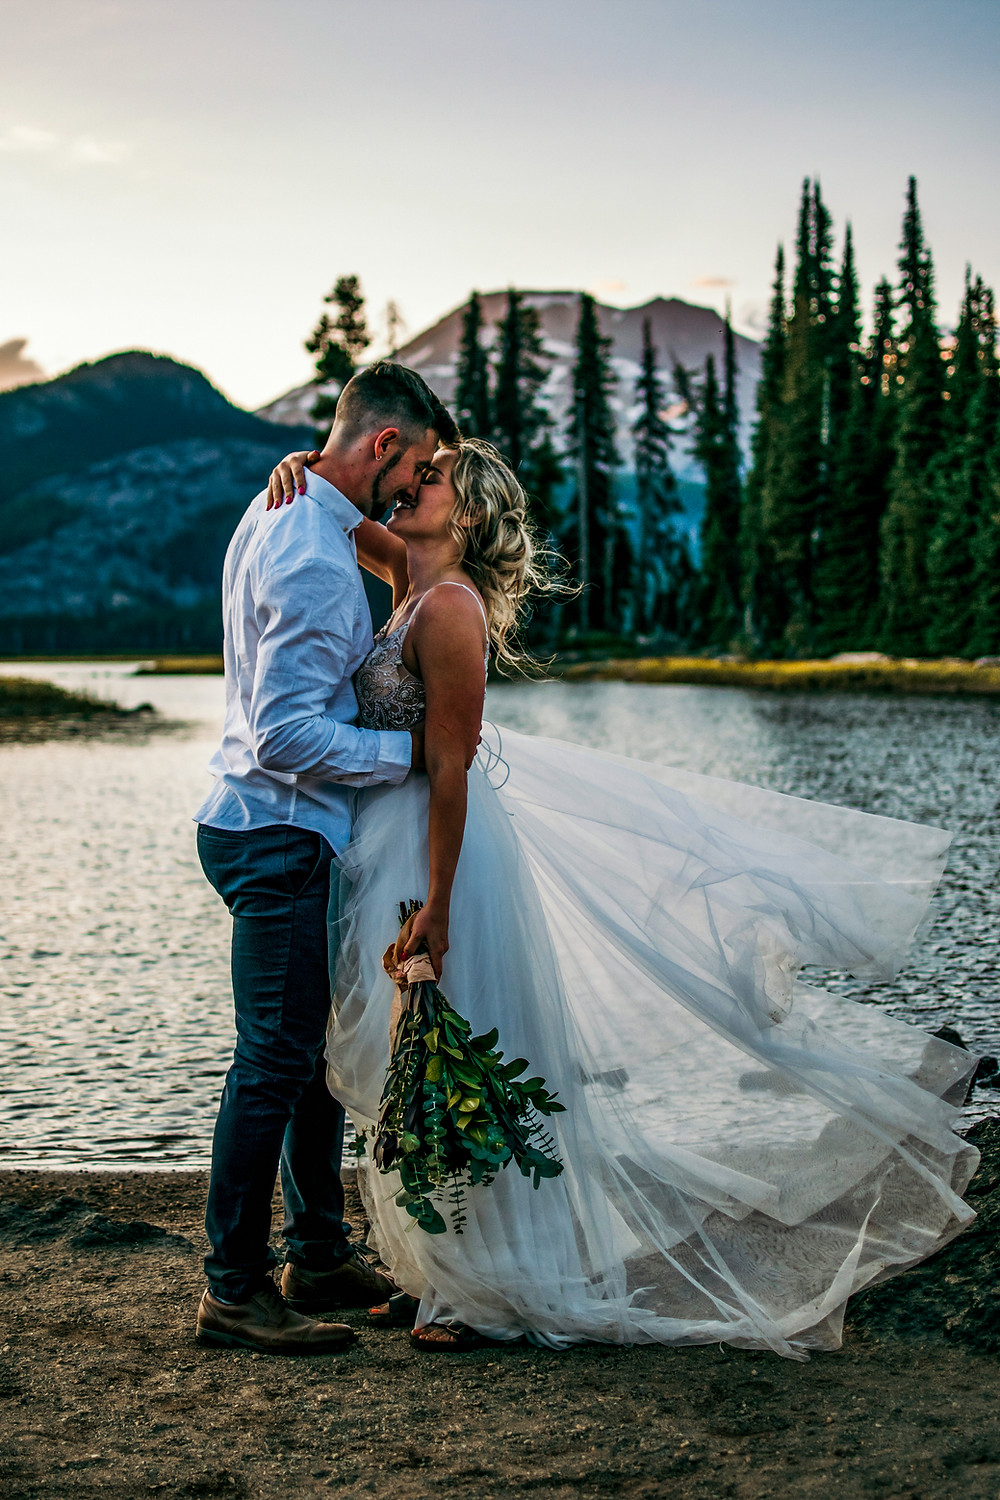 A couple kisses during their adventure elopement near mountains and a lake